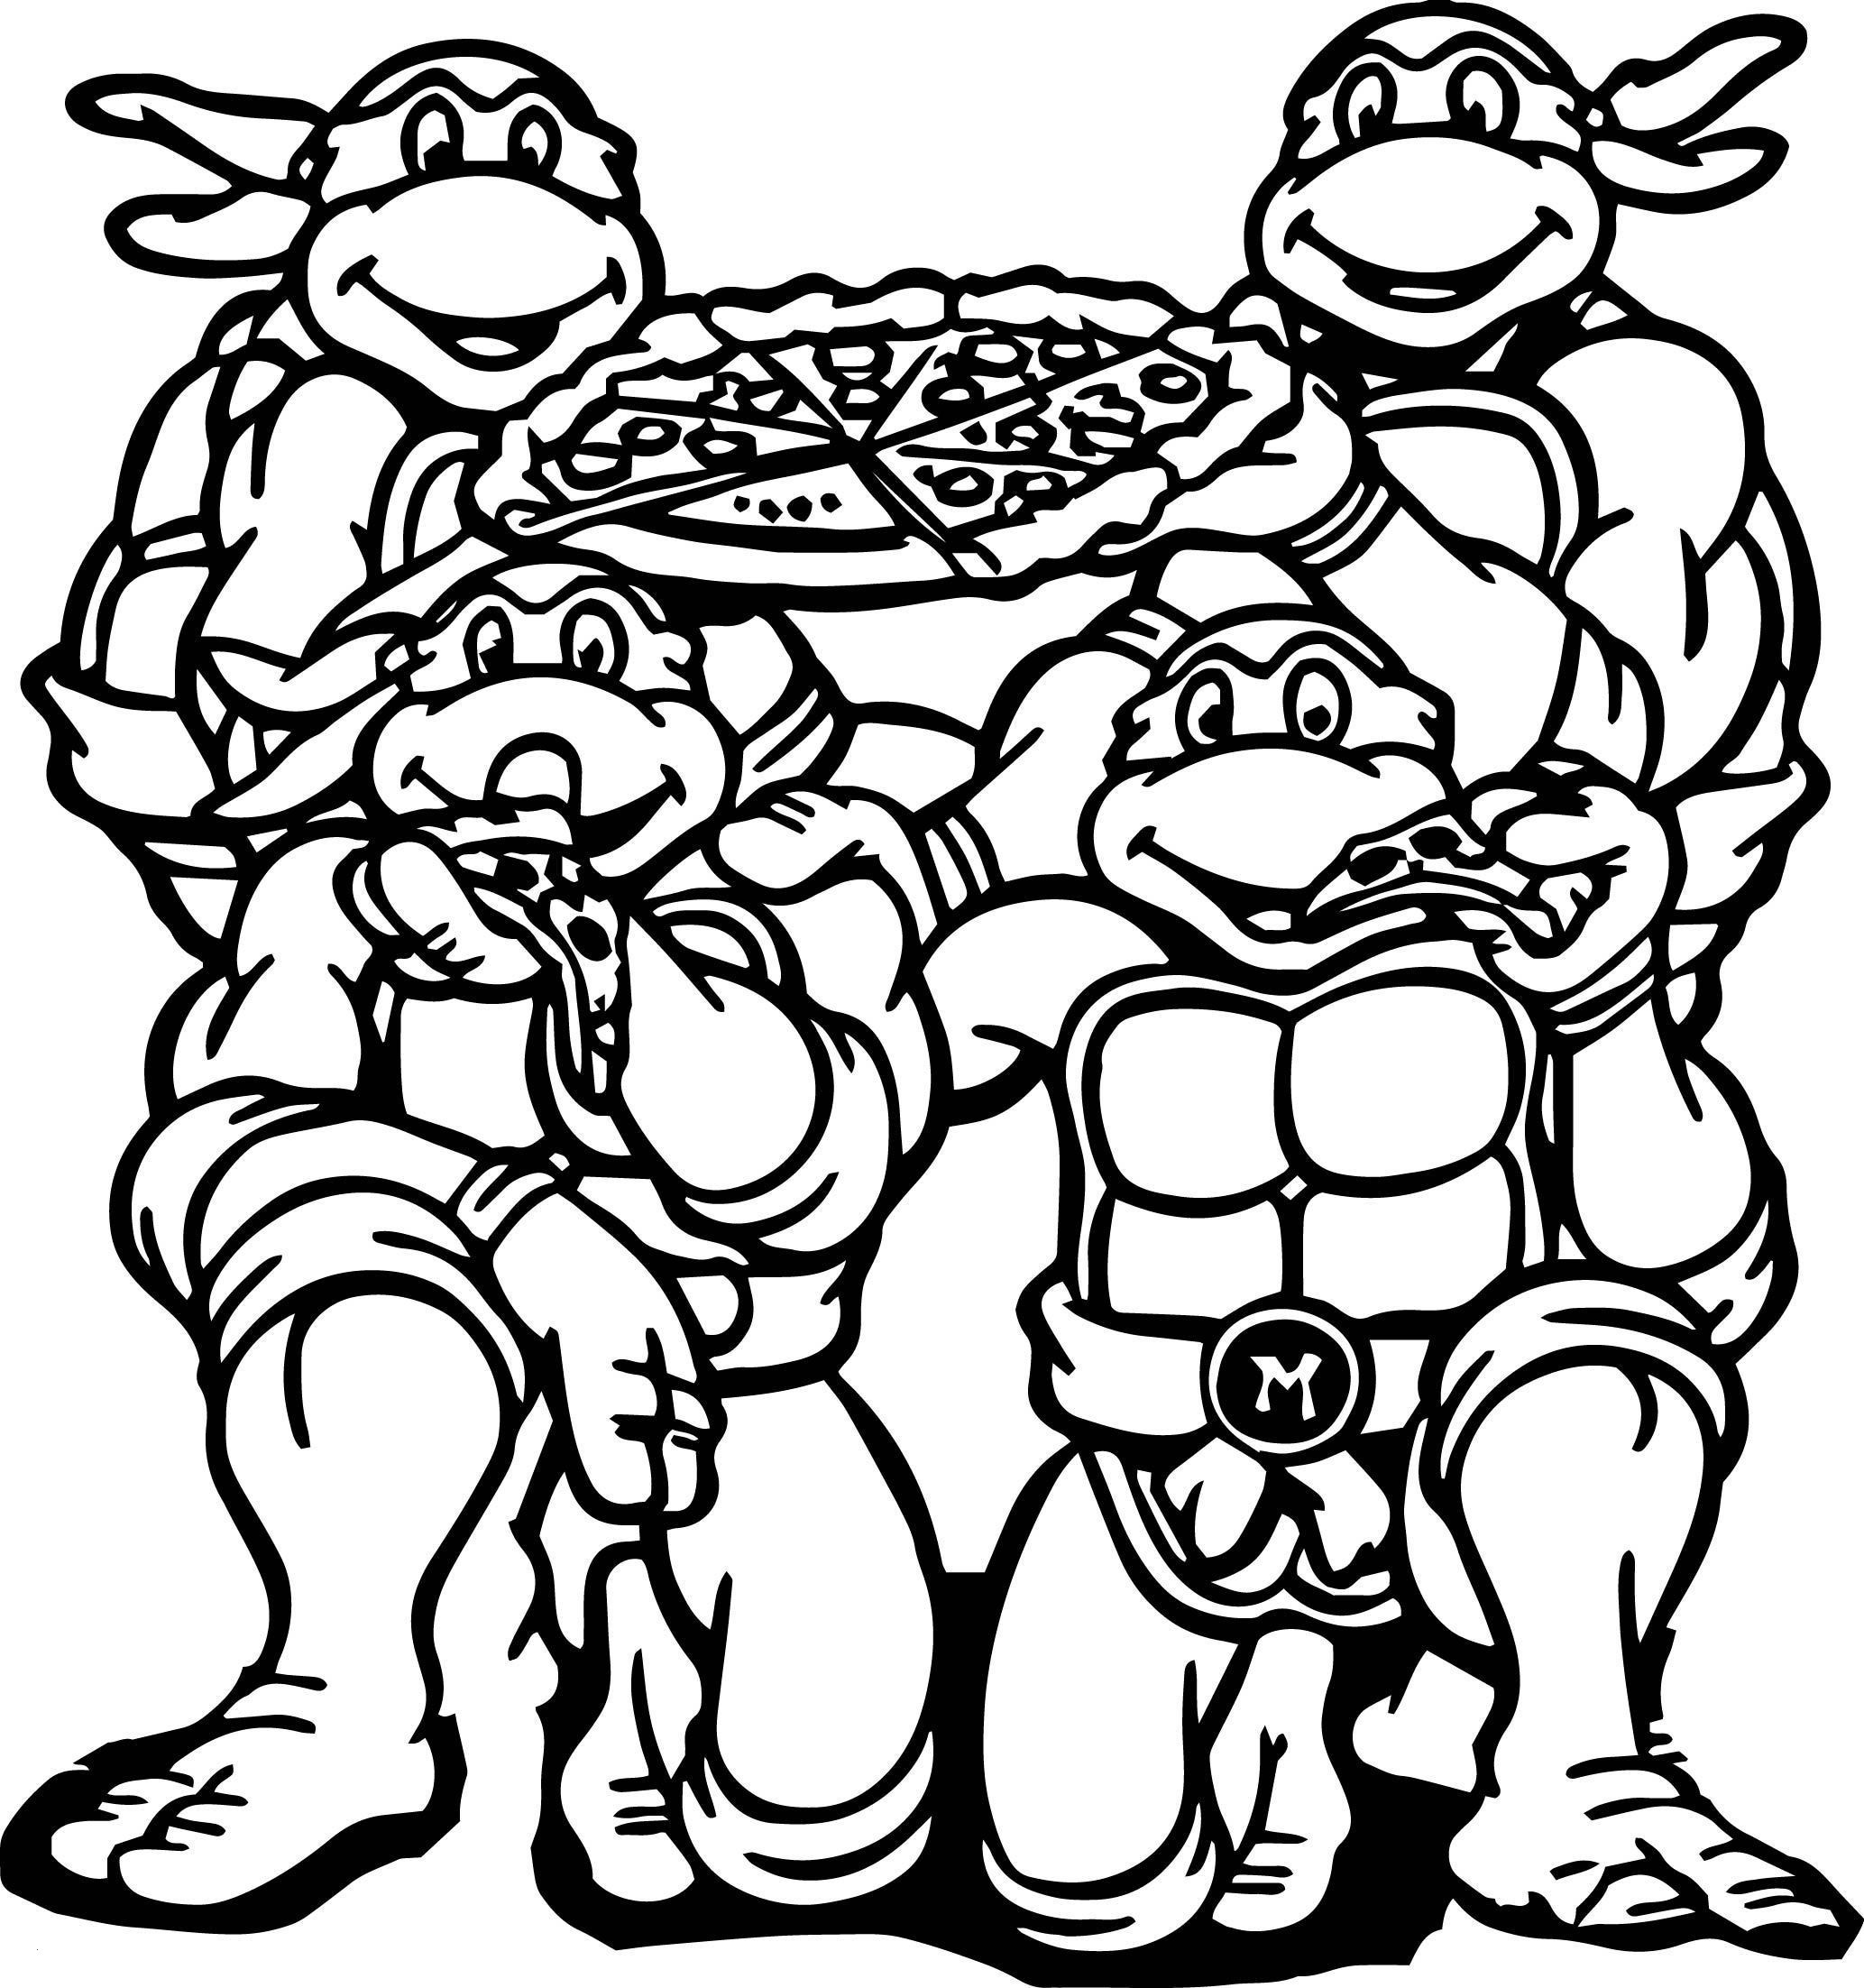 Ausmalbilder Ninja Turtles Inspirierend Ninja Turtles Coloring Pages Get This Michelangelo Teenage Mutant Sammlung